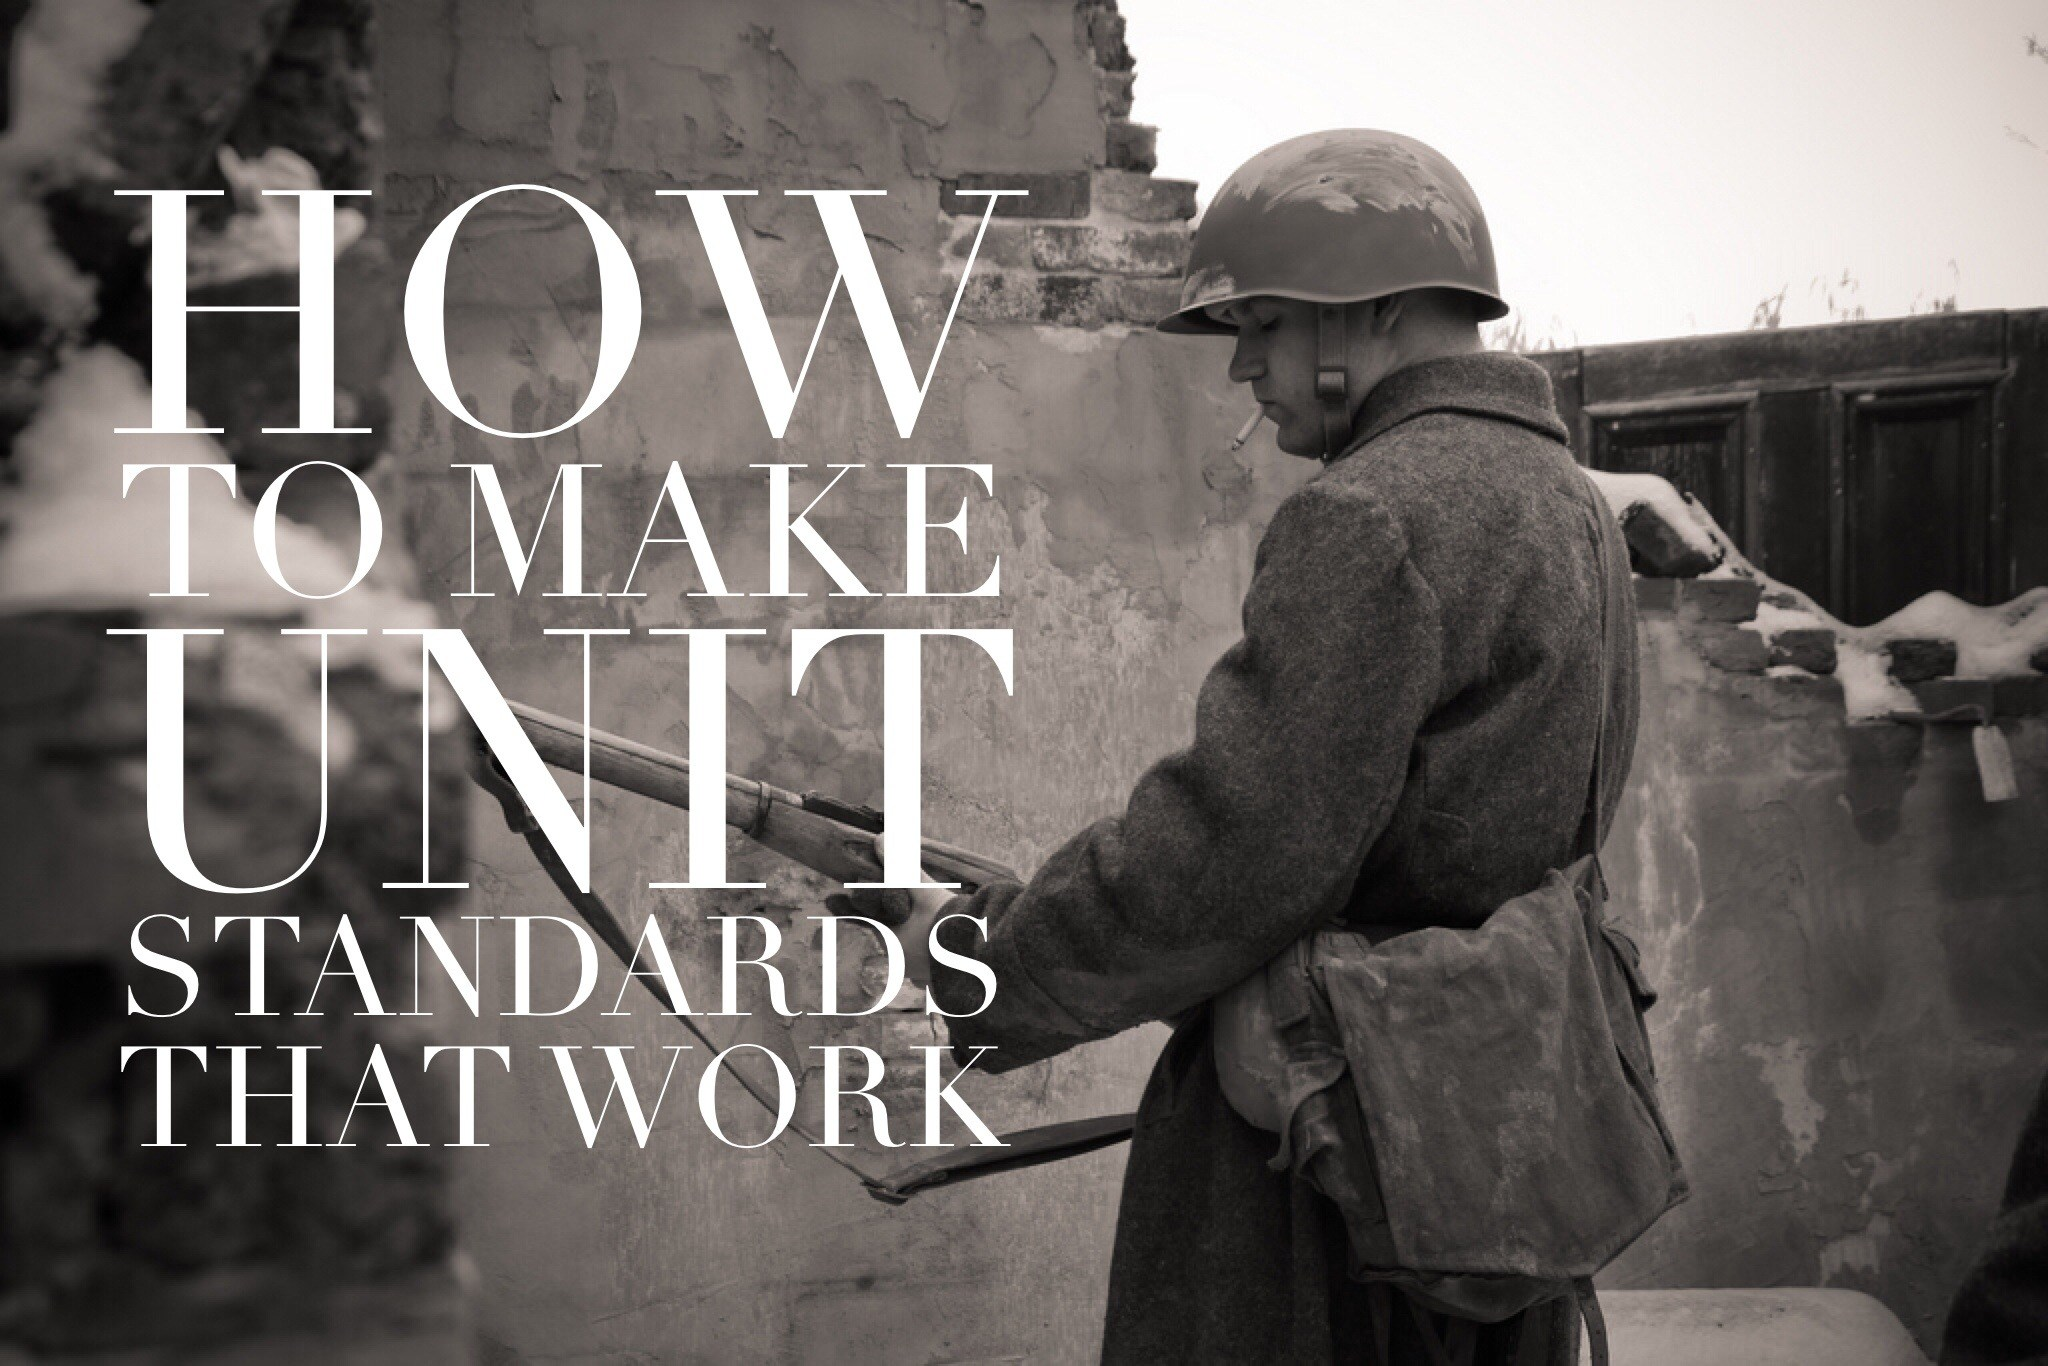 How to make unit standards that work - Historically Speaking